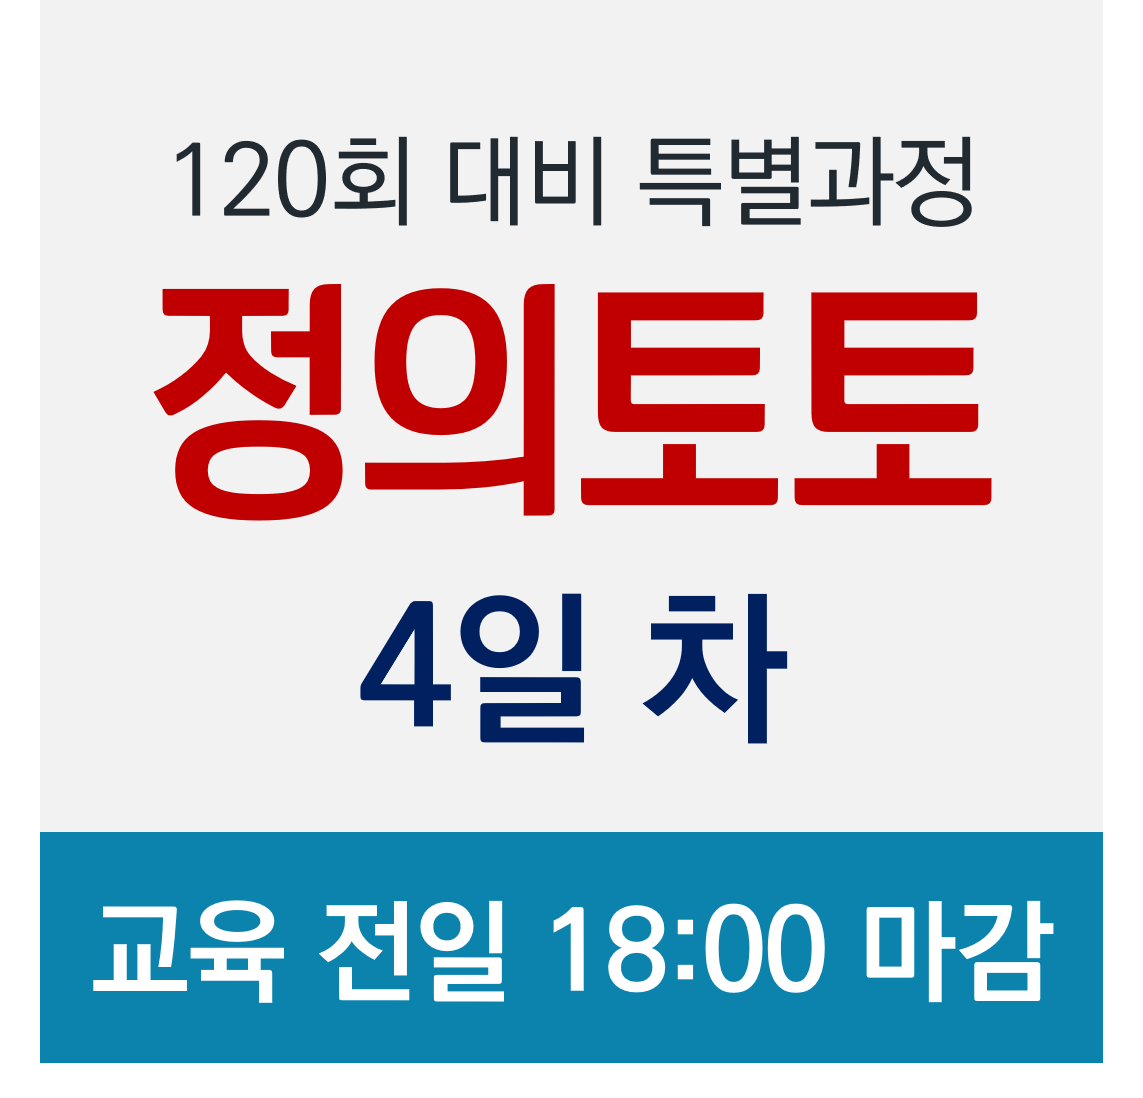 [정의토토] 120회 정보처리기술사 특별과정 2020.01.18(토) / 4일 차